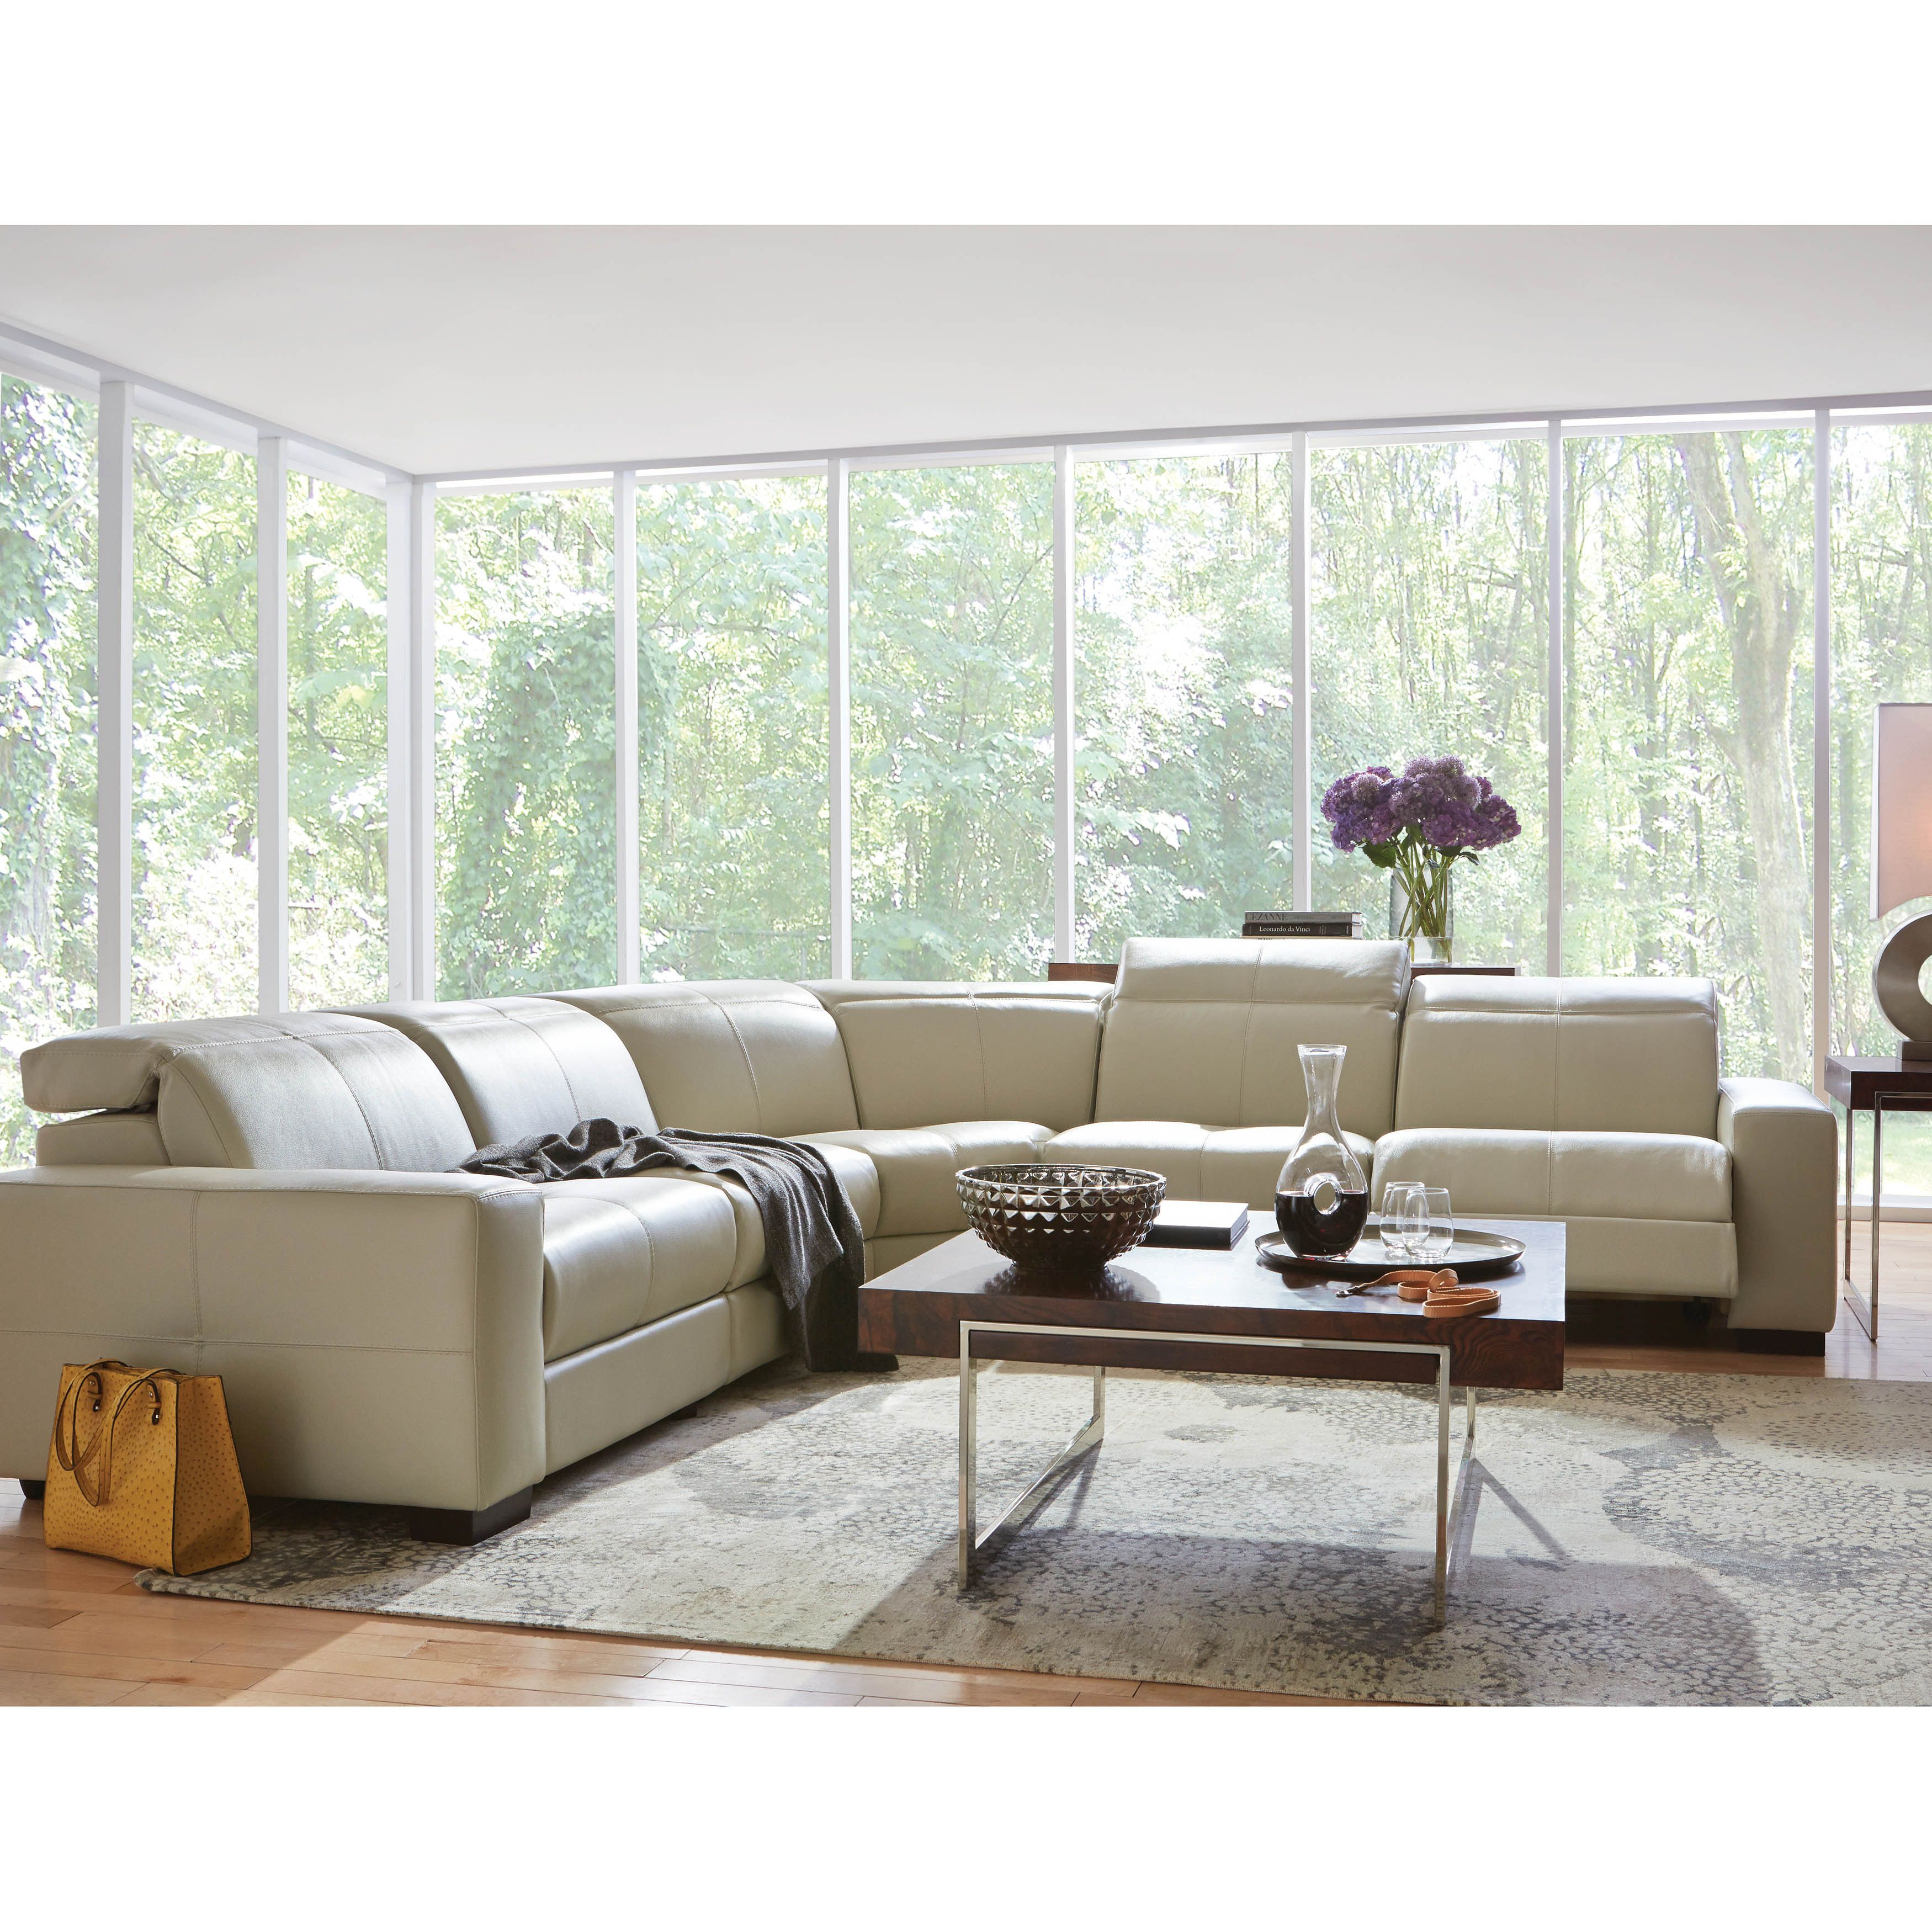 how to deep clean white leather sofa light blue bed cool contemporary and it reclines the gianna